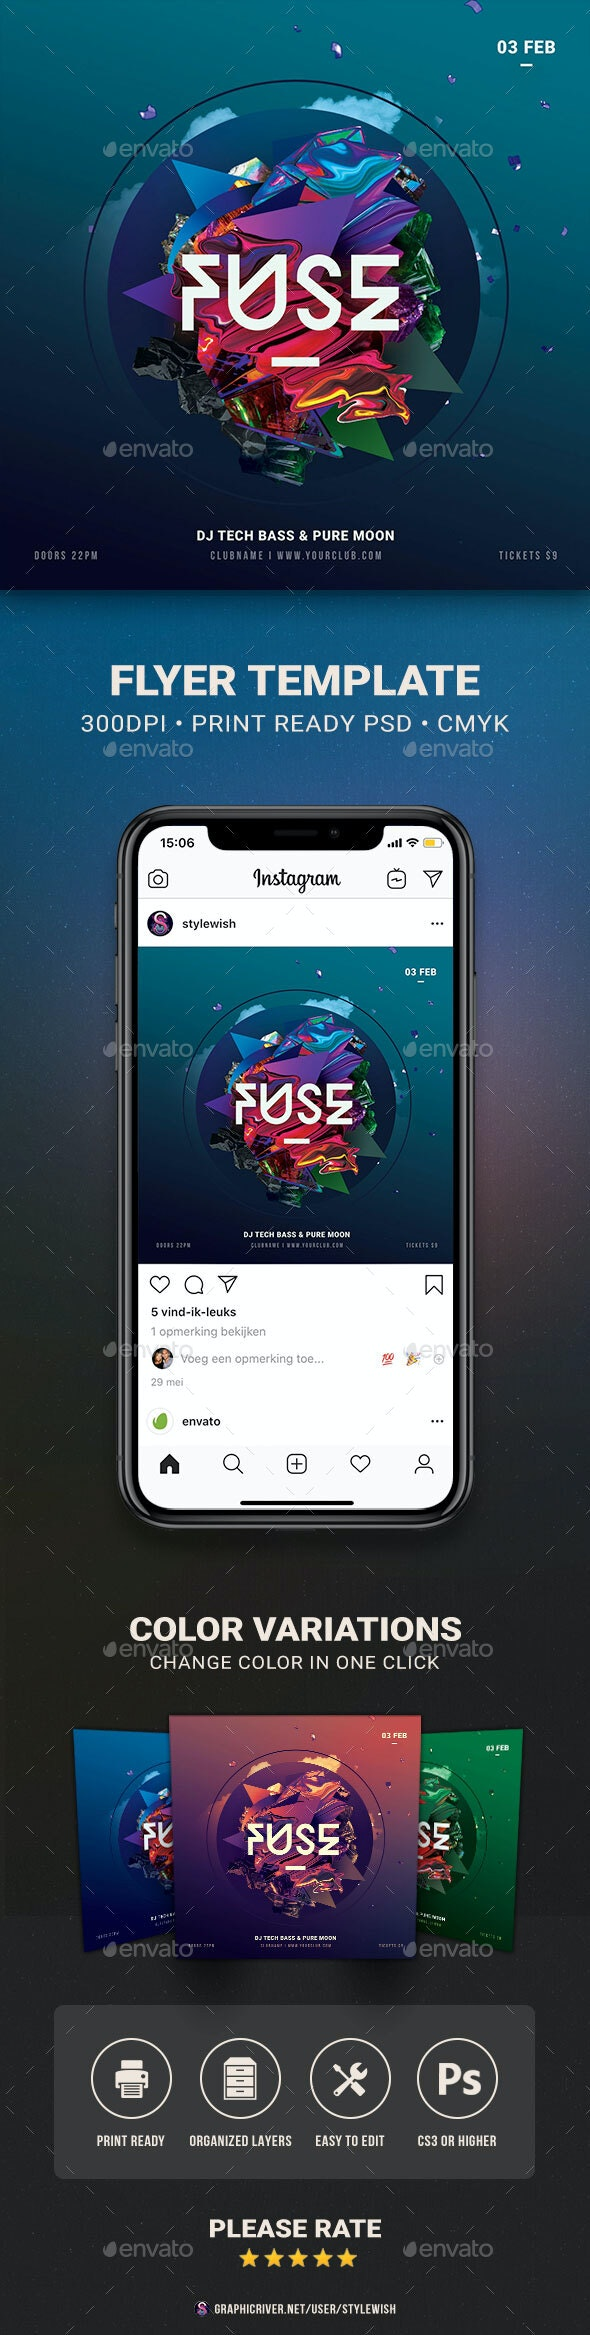 Fuse Flyer - Clubs & Parties Events